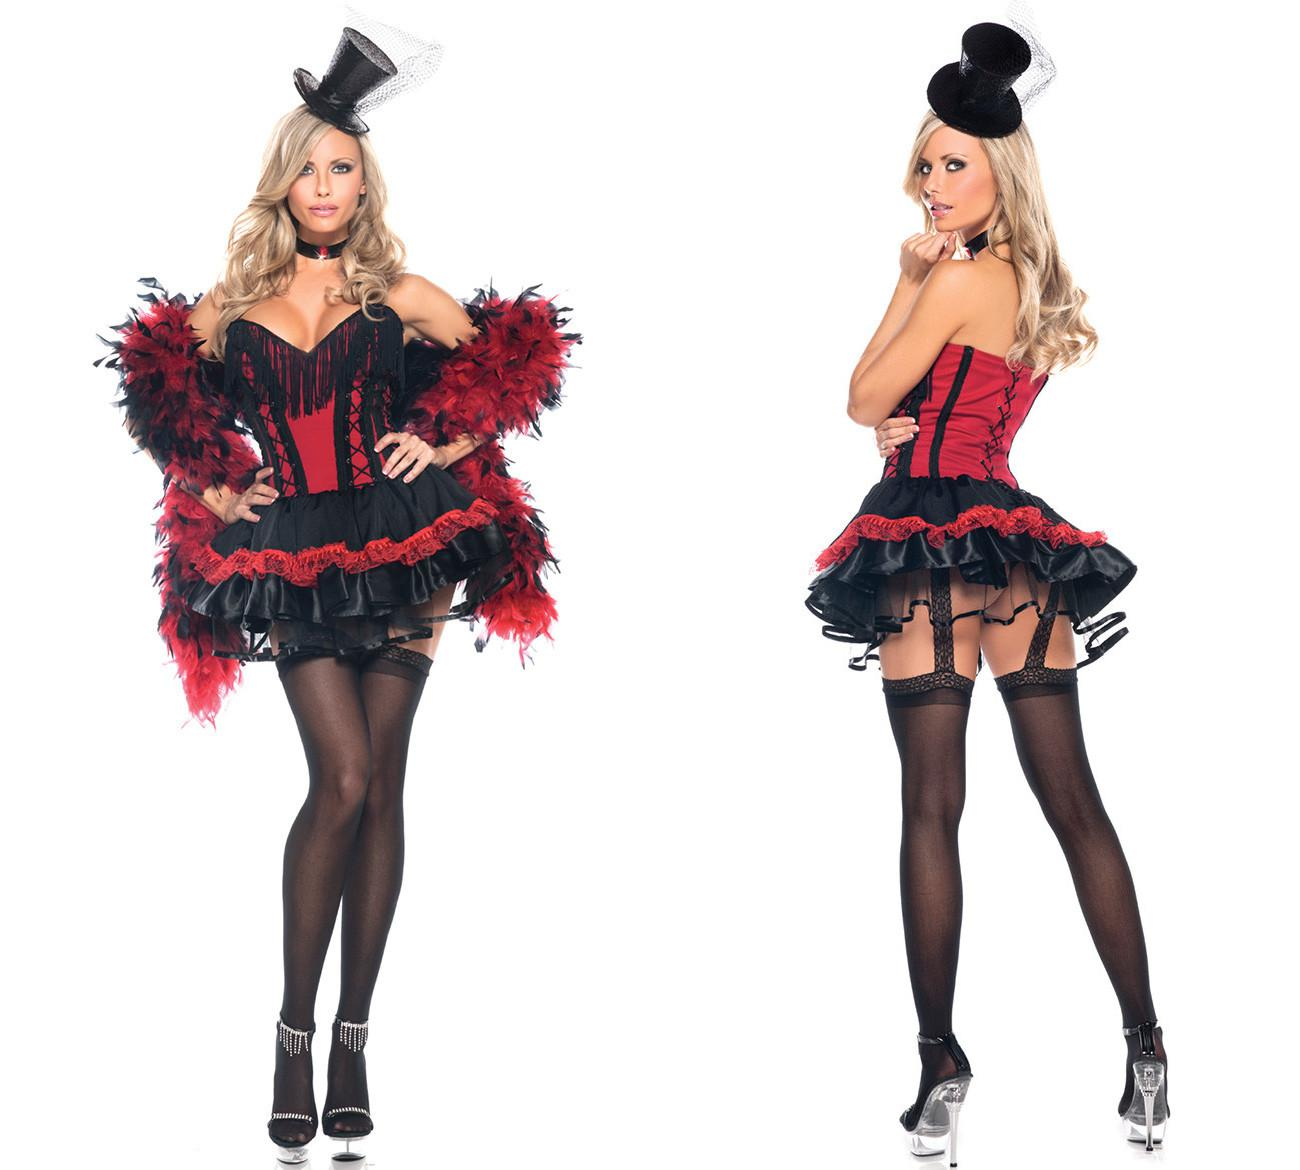 2018 2014 Hot Women Sexy Saloon Girl Seductress Burlesque Halloween Carnival Costume From Icy_corset $11.79 | Dhgate.Com  sc 1 st  DHgate.com & 2018 2014 Hot Women Sexy Saloon Girl Seductress Burlesque Halloween ...